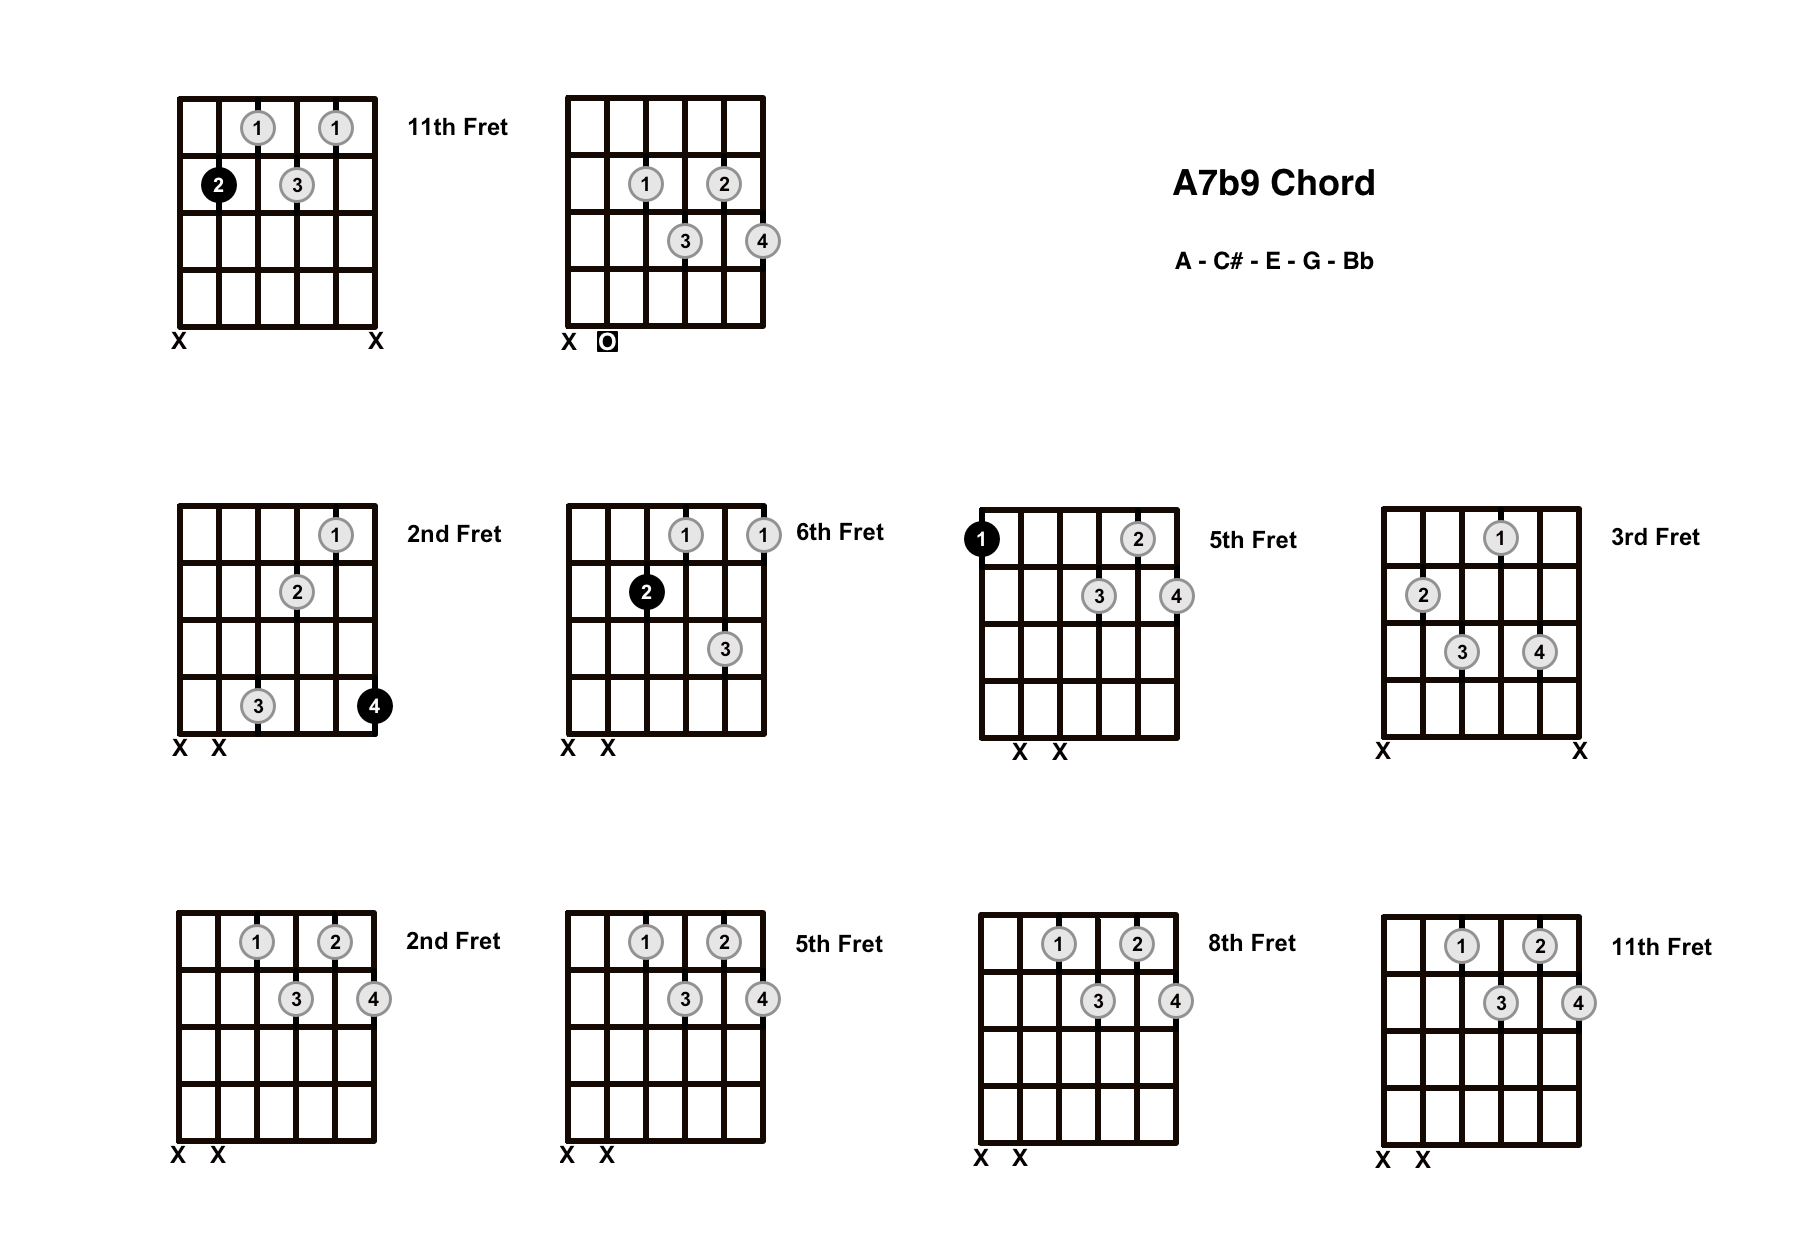 A7b9 Chord On The Guitar (A7 Flat 9) – Diagrams, Finger Positions and Theory